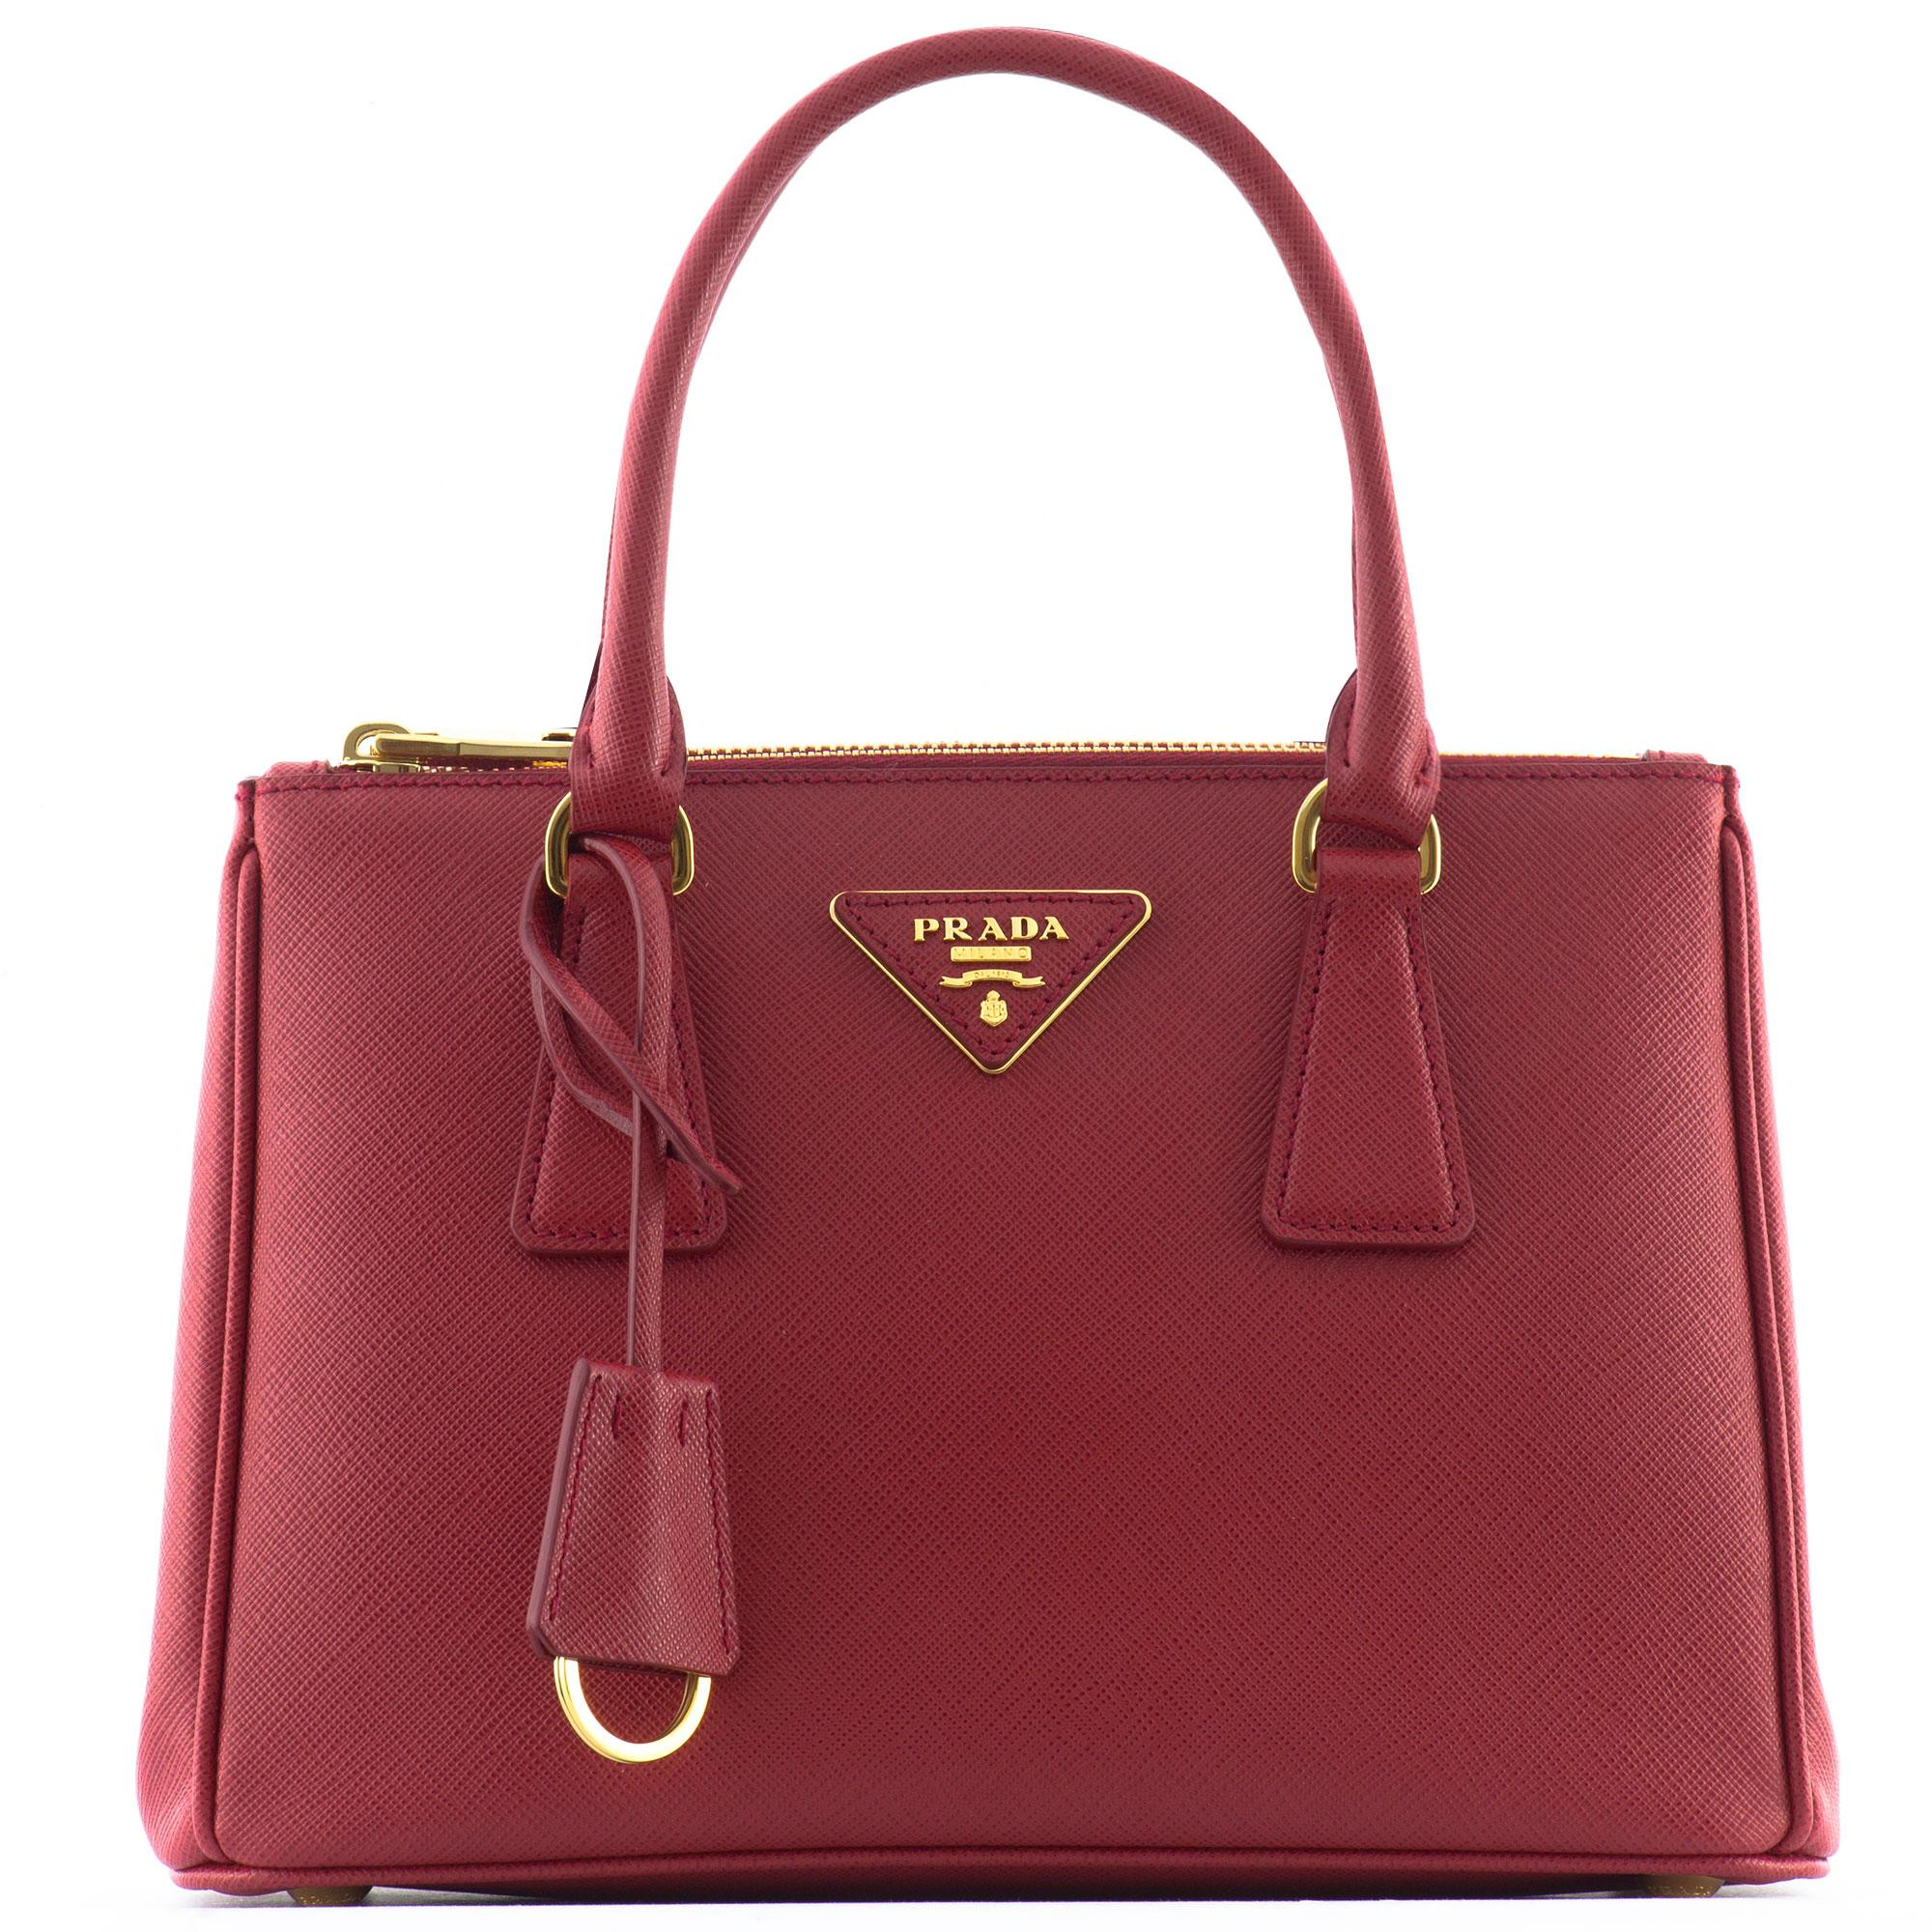 cc19c9e2e62237 Galleria Small Leather Tote Handbag By Prada | Stanford Center for ...